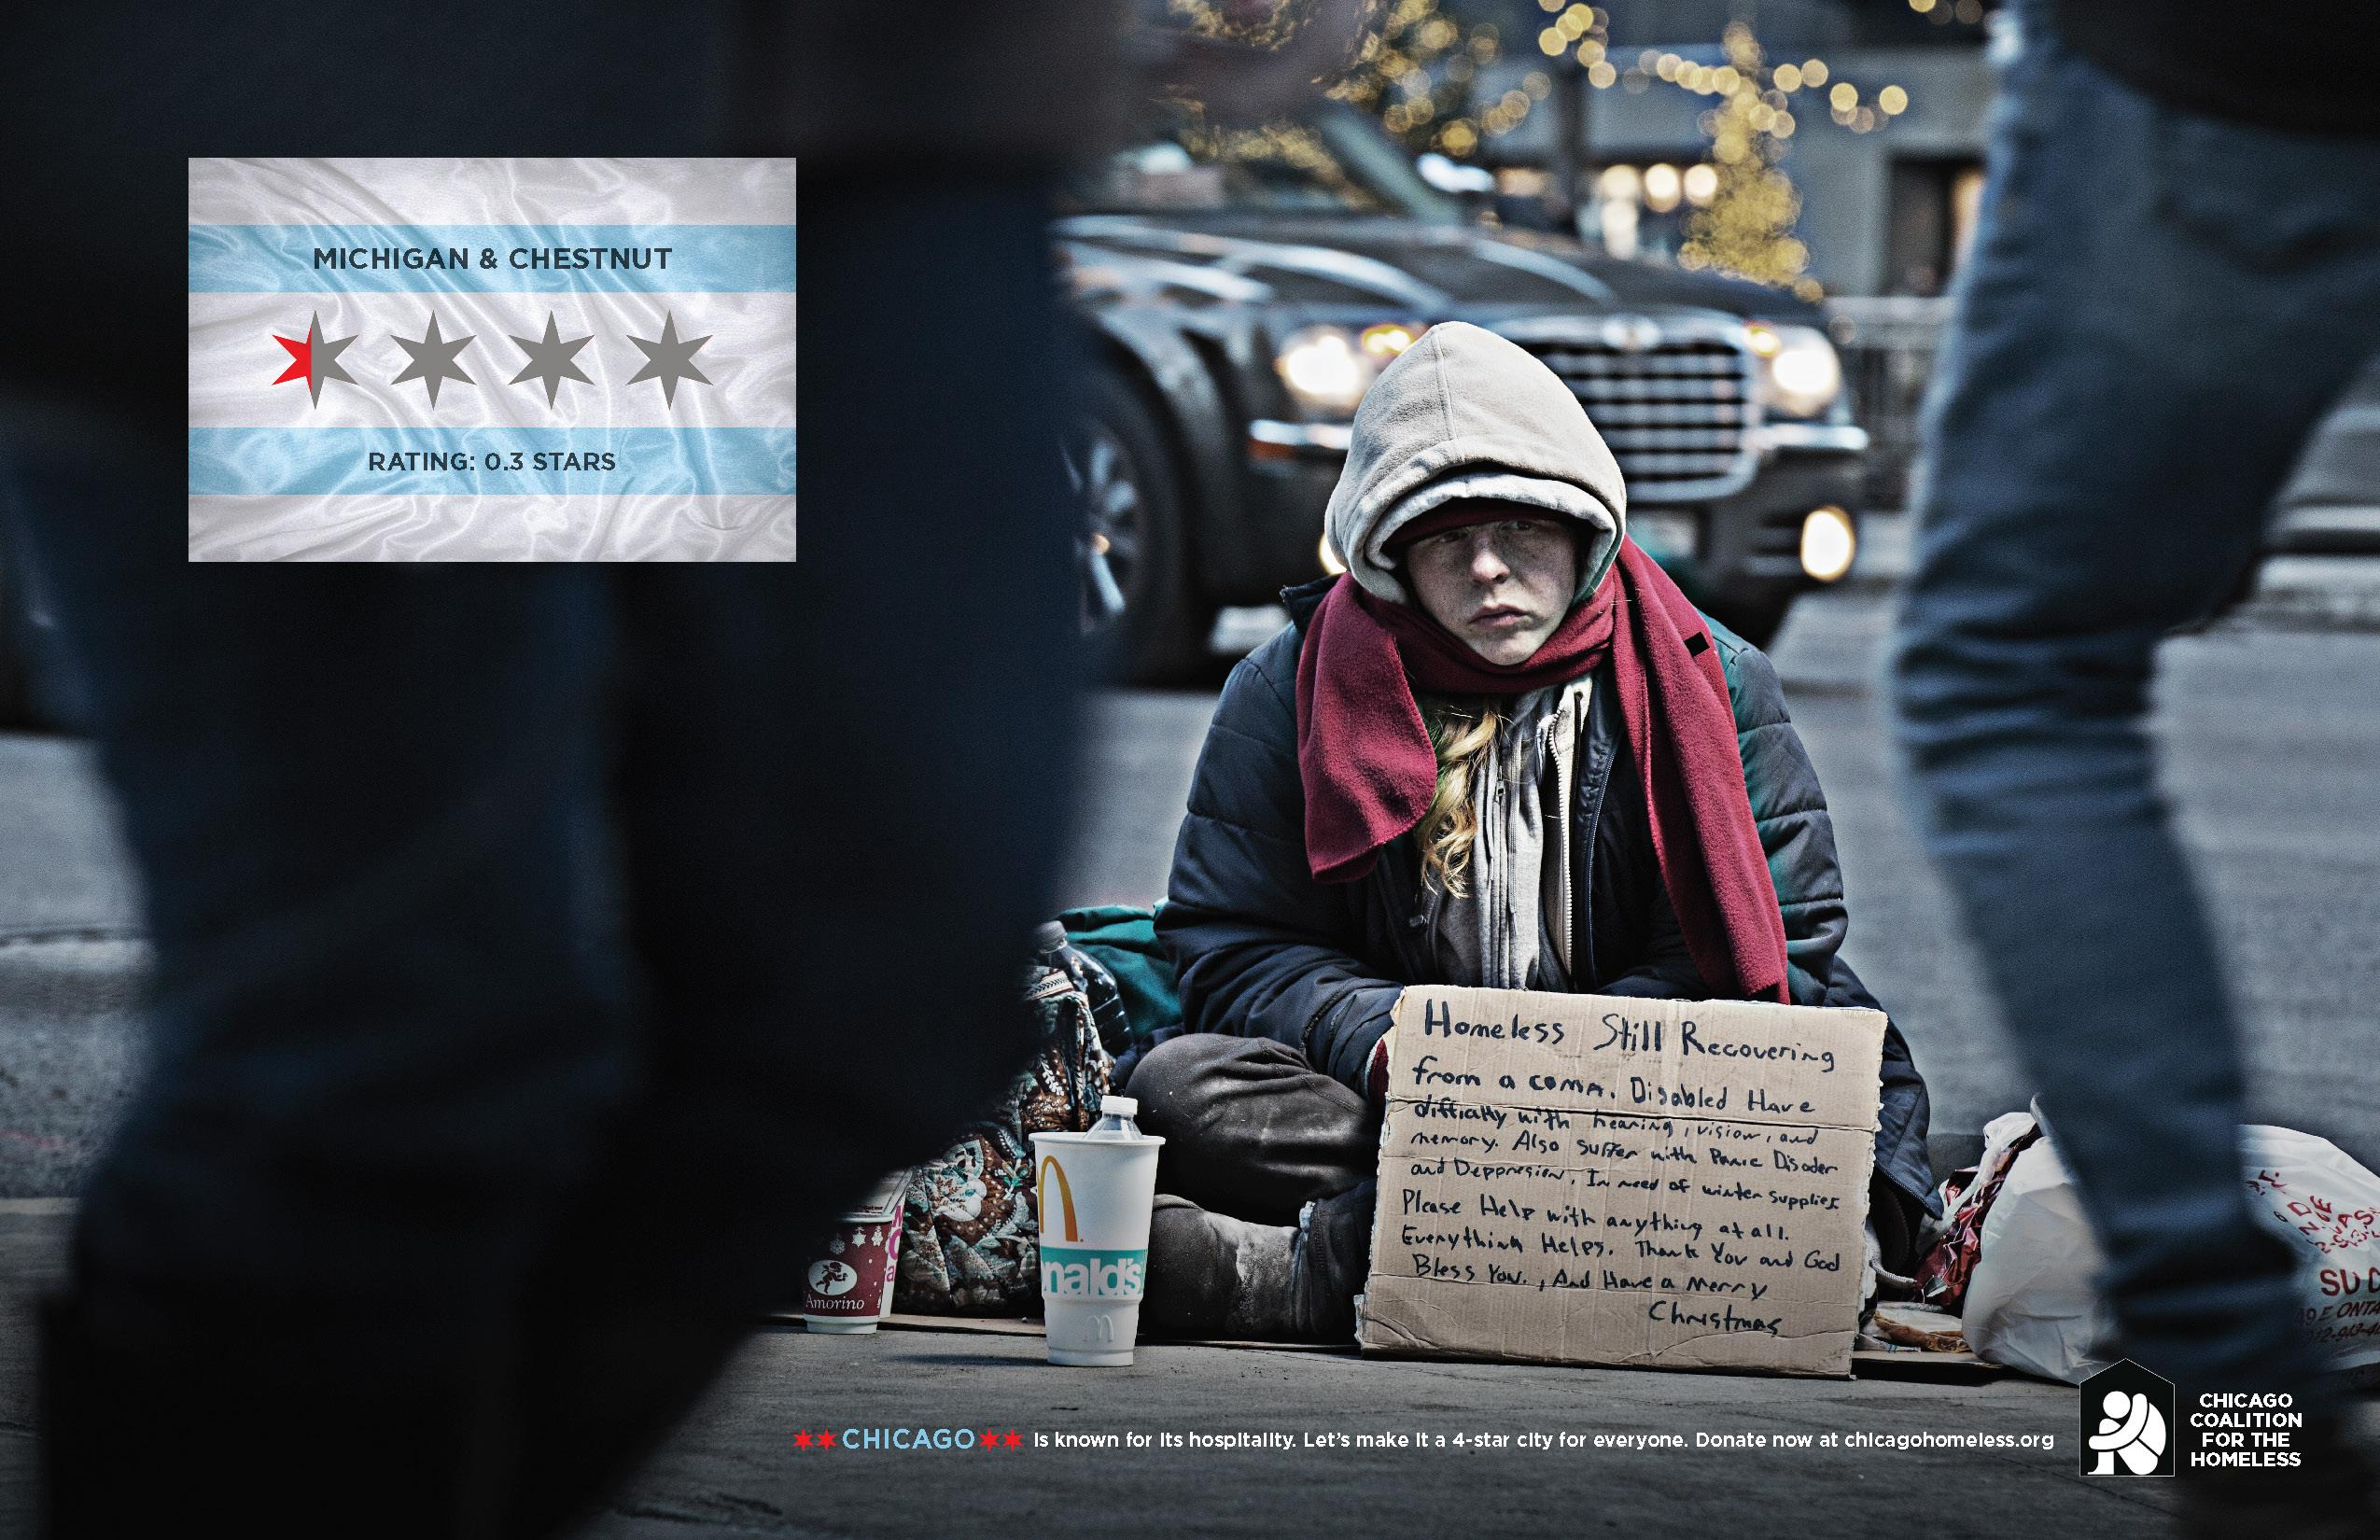 Chicago Coalition for the Homeless: How would you rate your city?